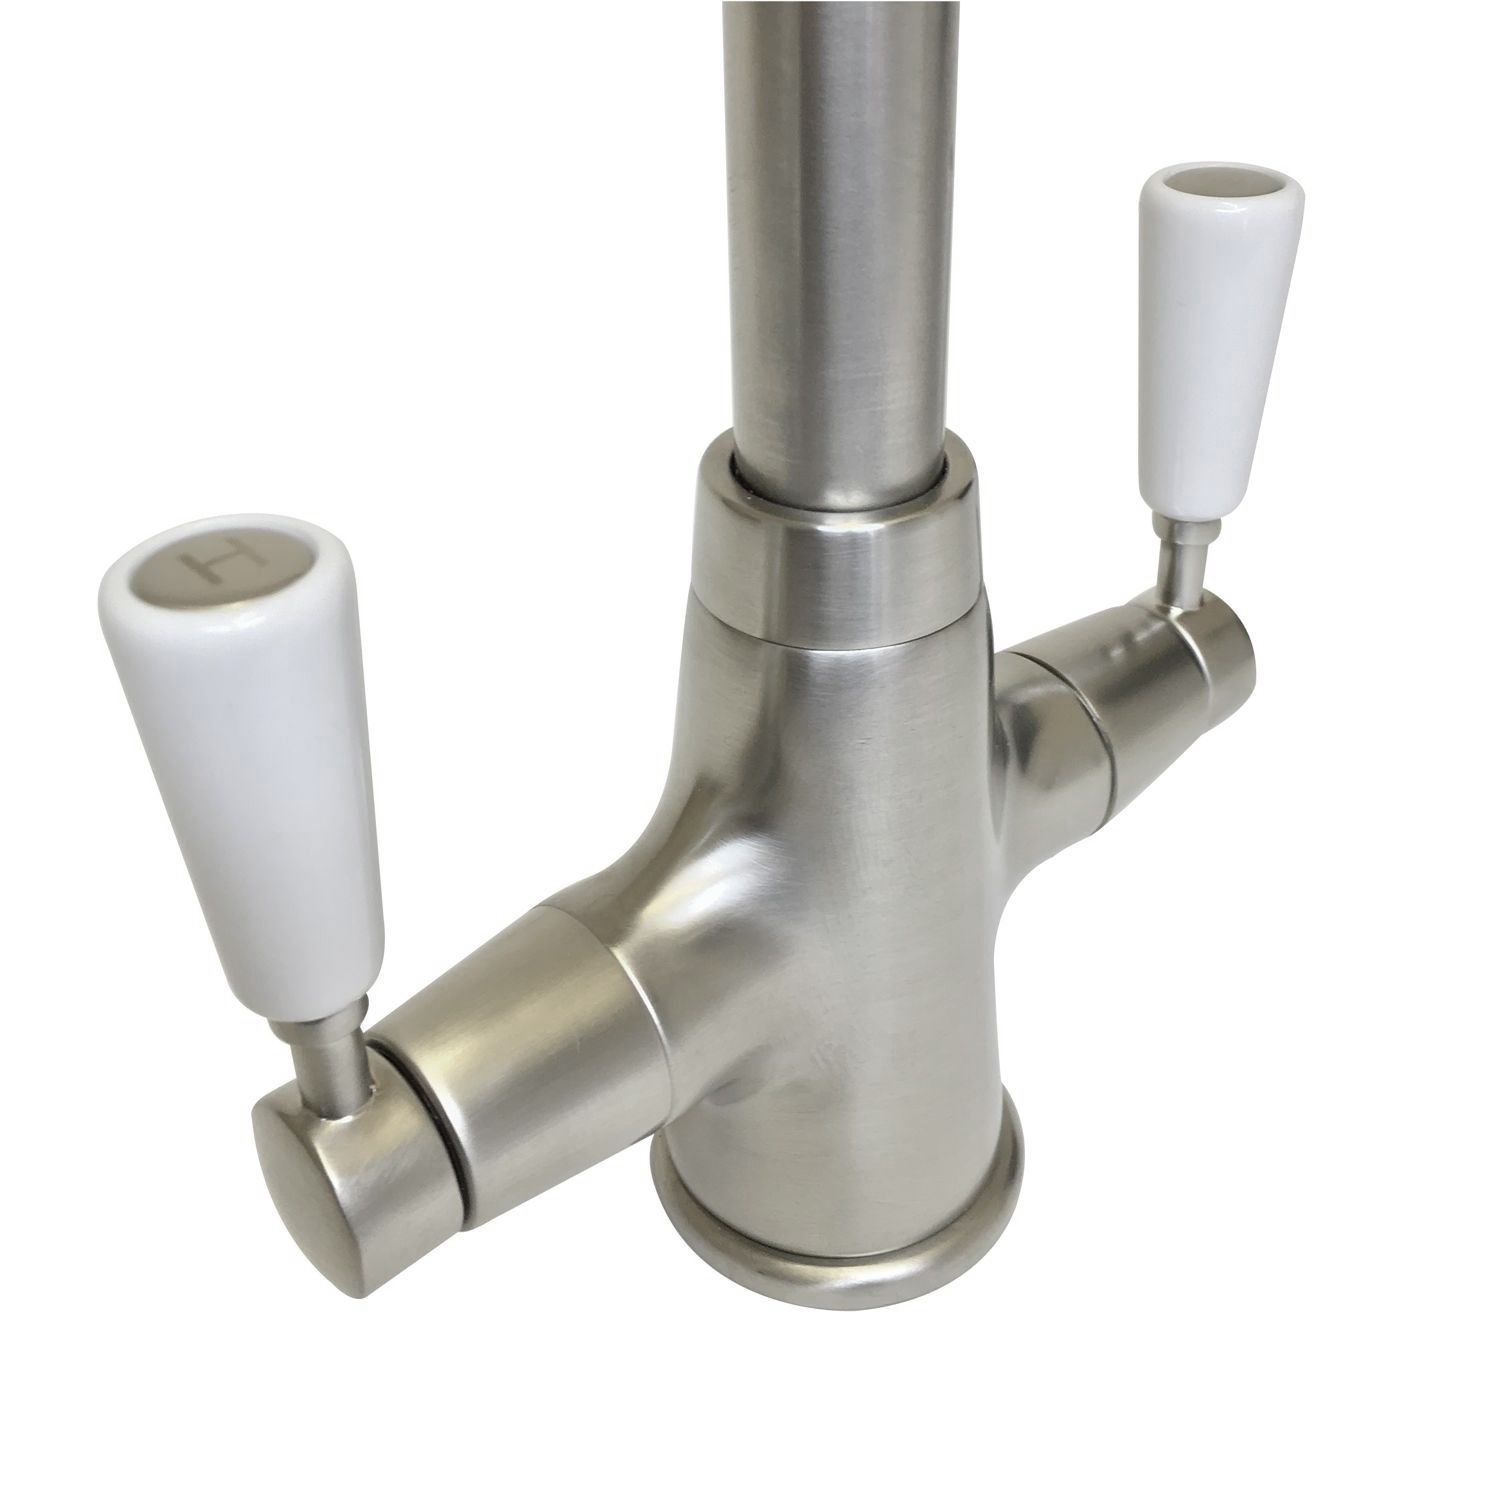 Bluci Nenbro handle detaiil in brushed nickel finish